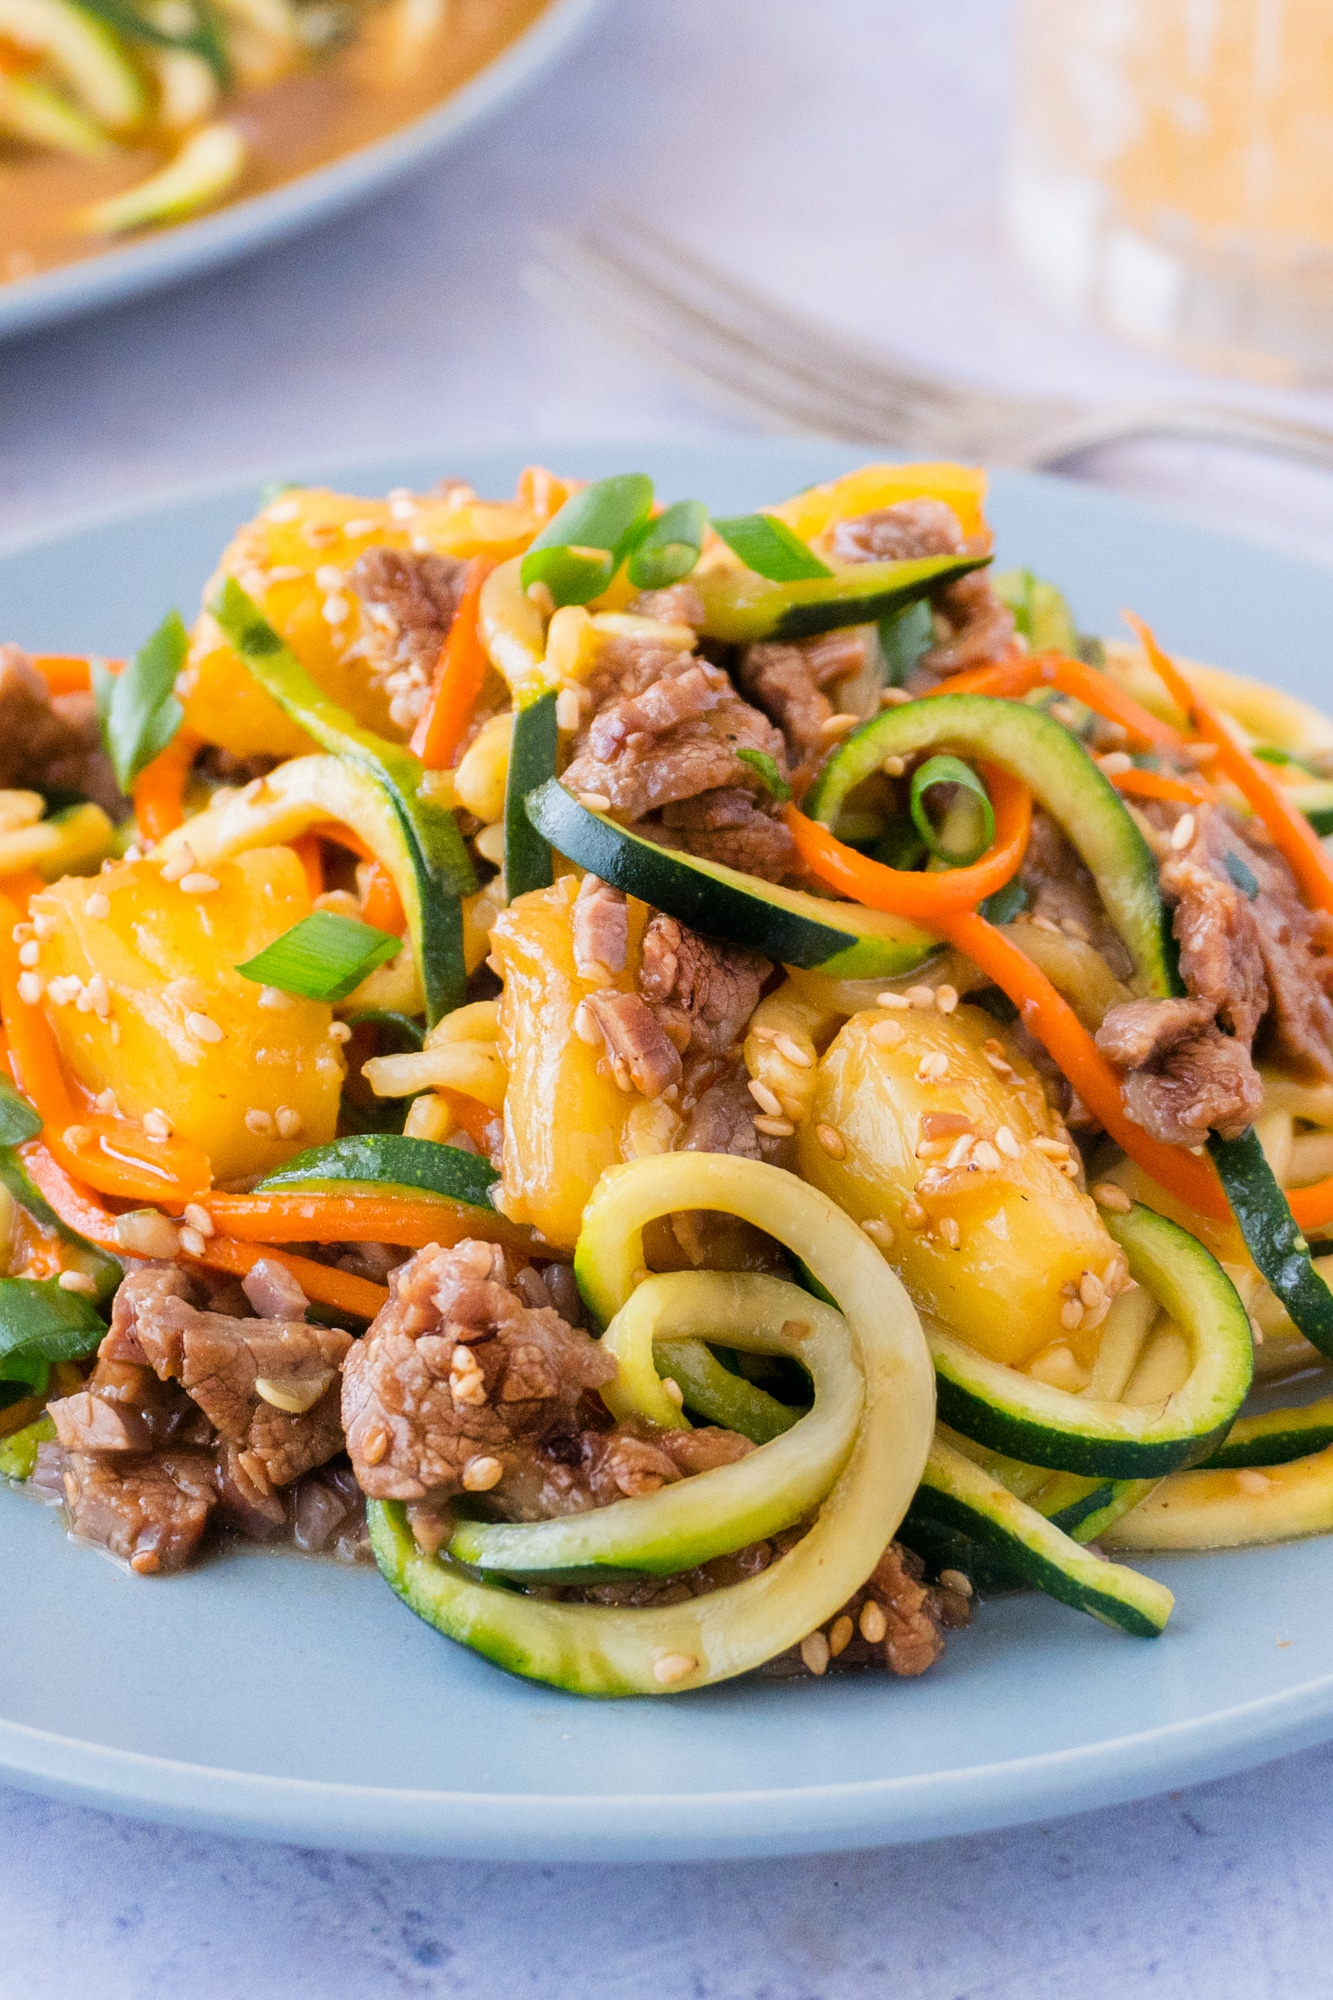 Zucchini Noodle Stir Fry With Mongolian Beef Sauce Eating Richly